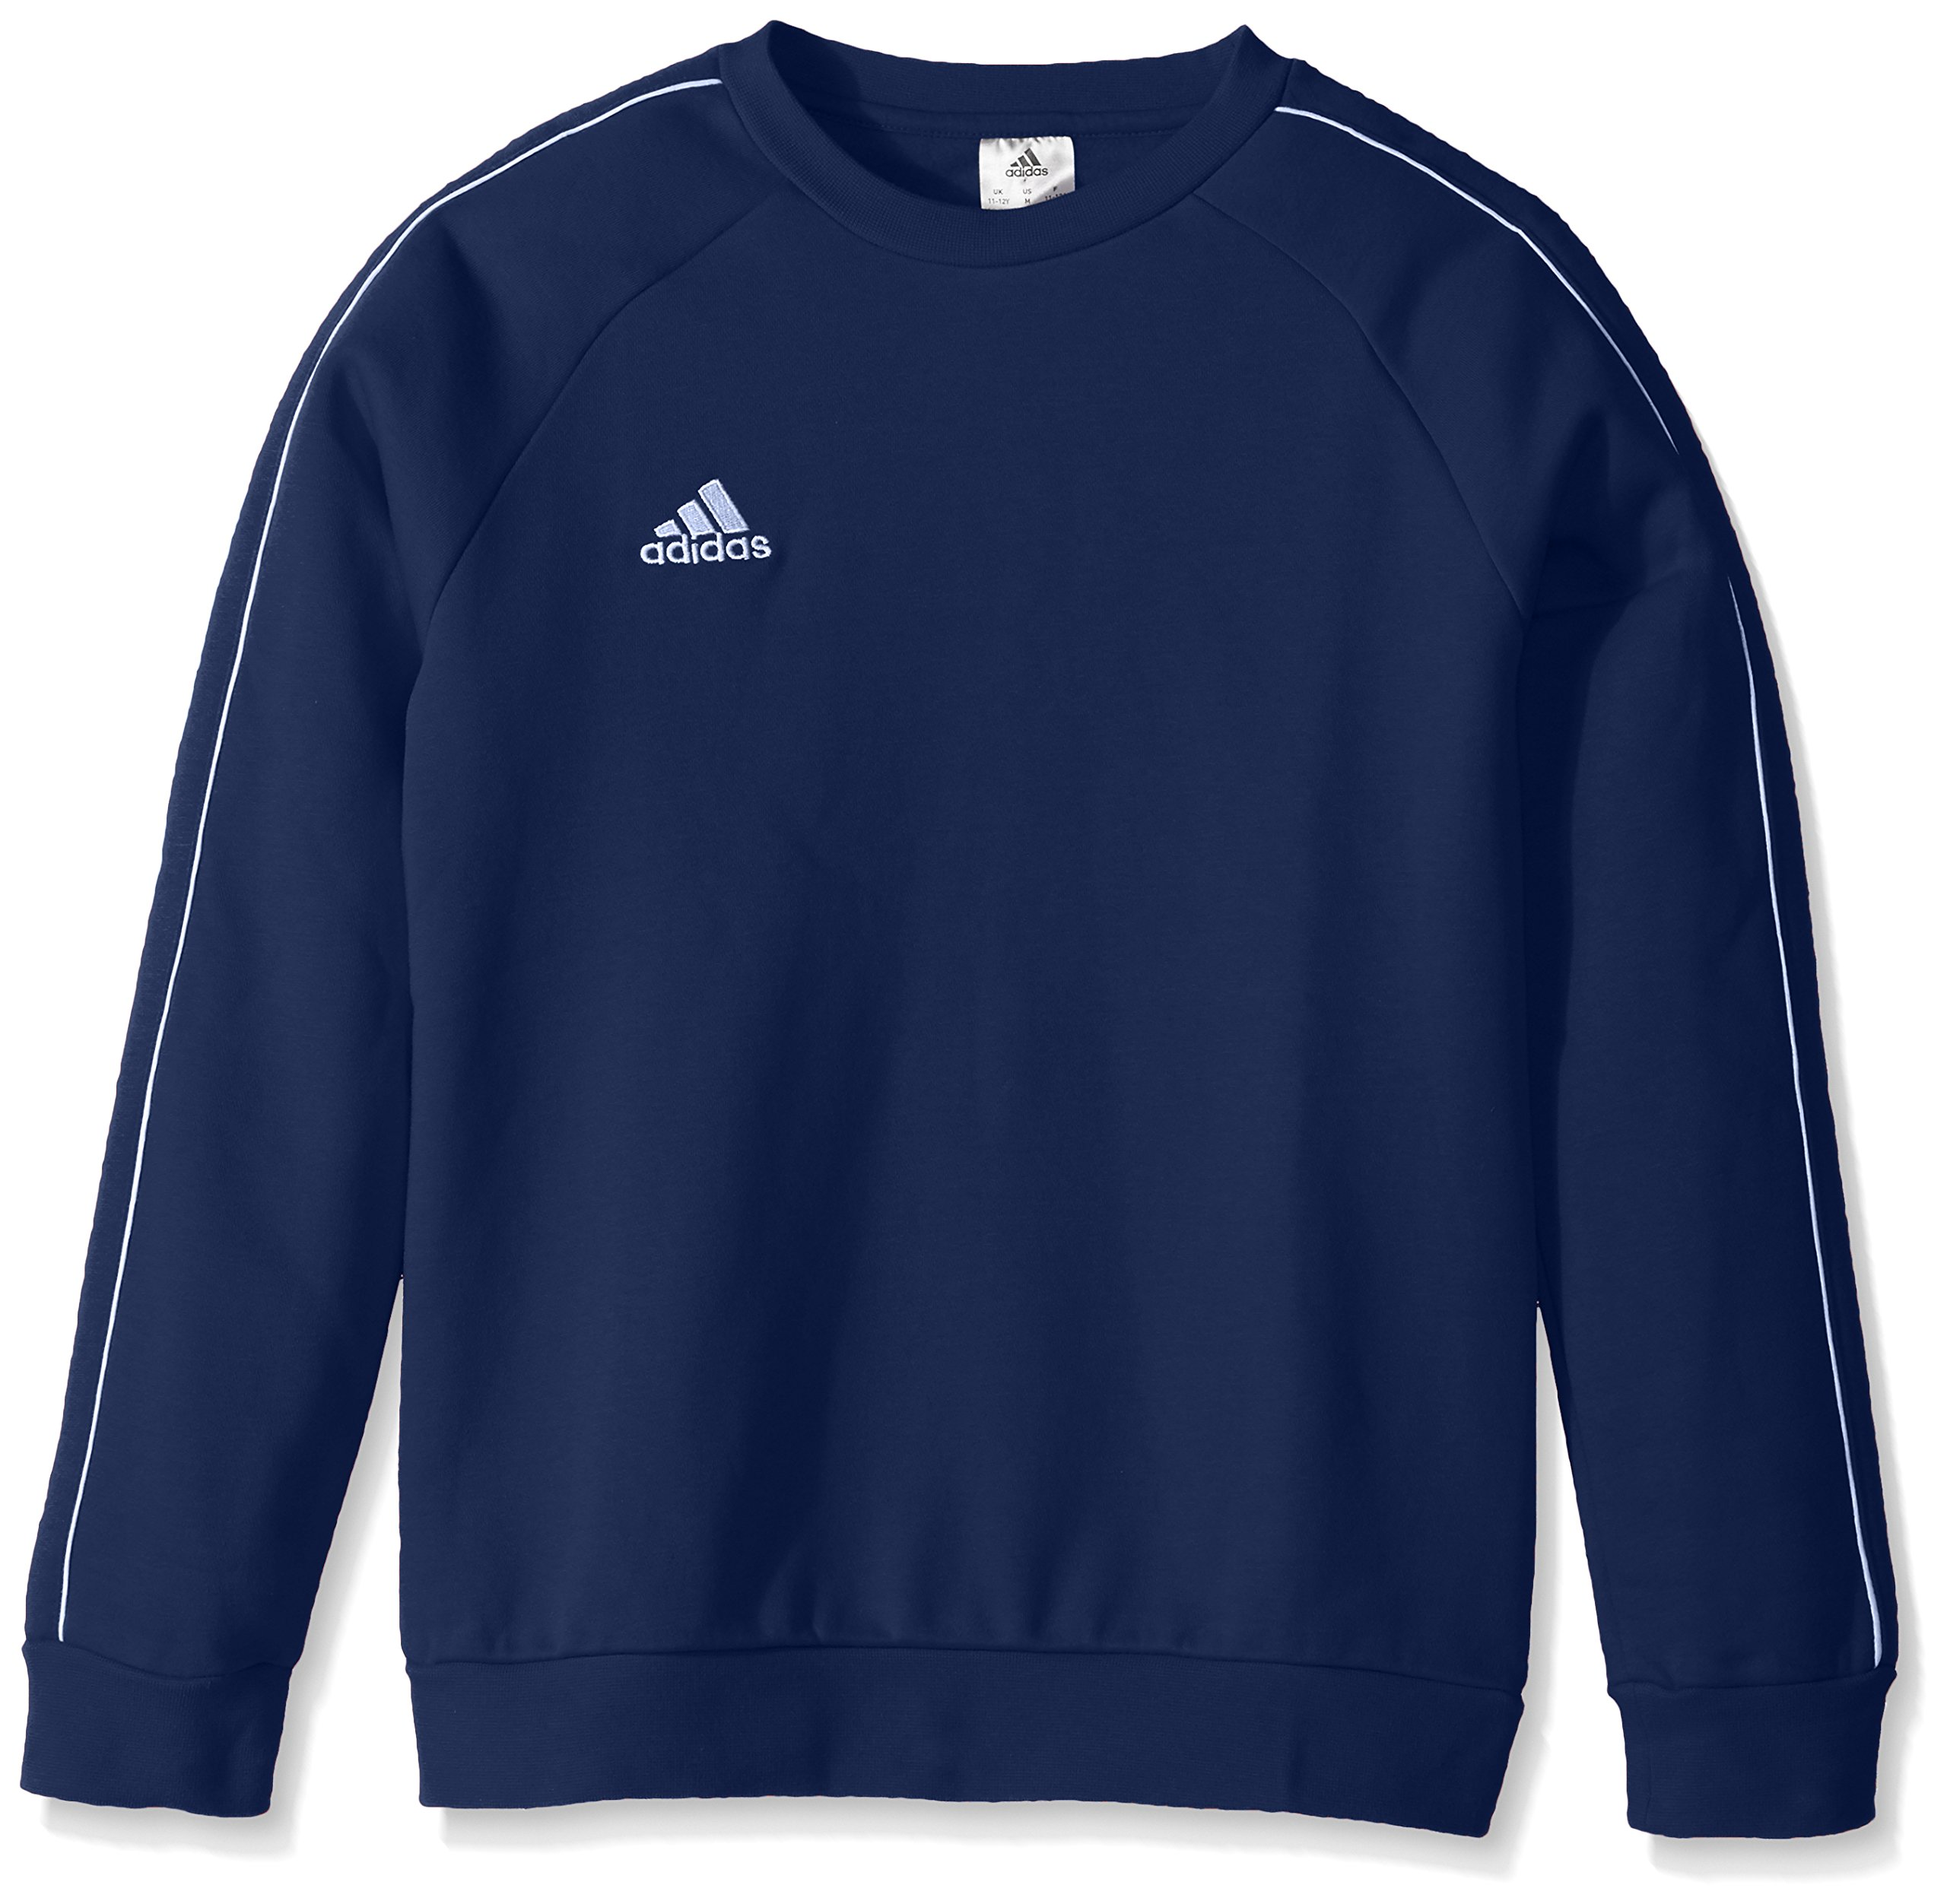 adidas Unisex Youth Soccer Core18 Sweat Top, Dark Blue/White, X-Large by adidas